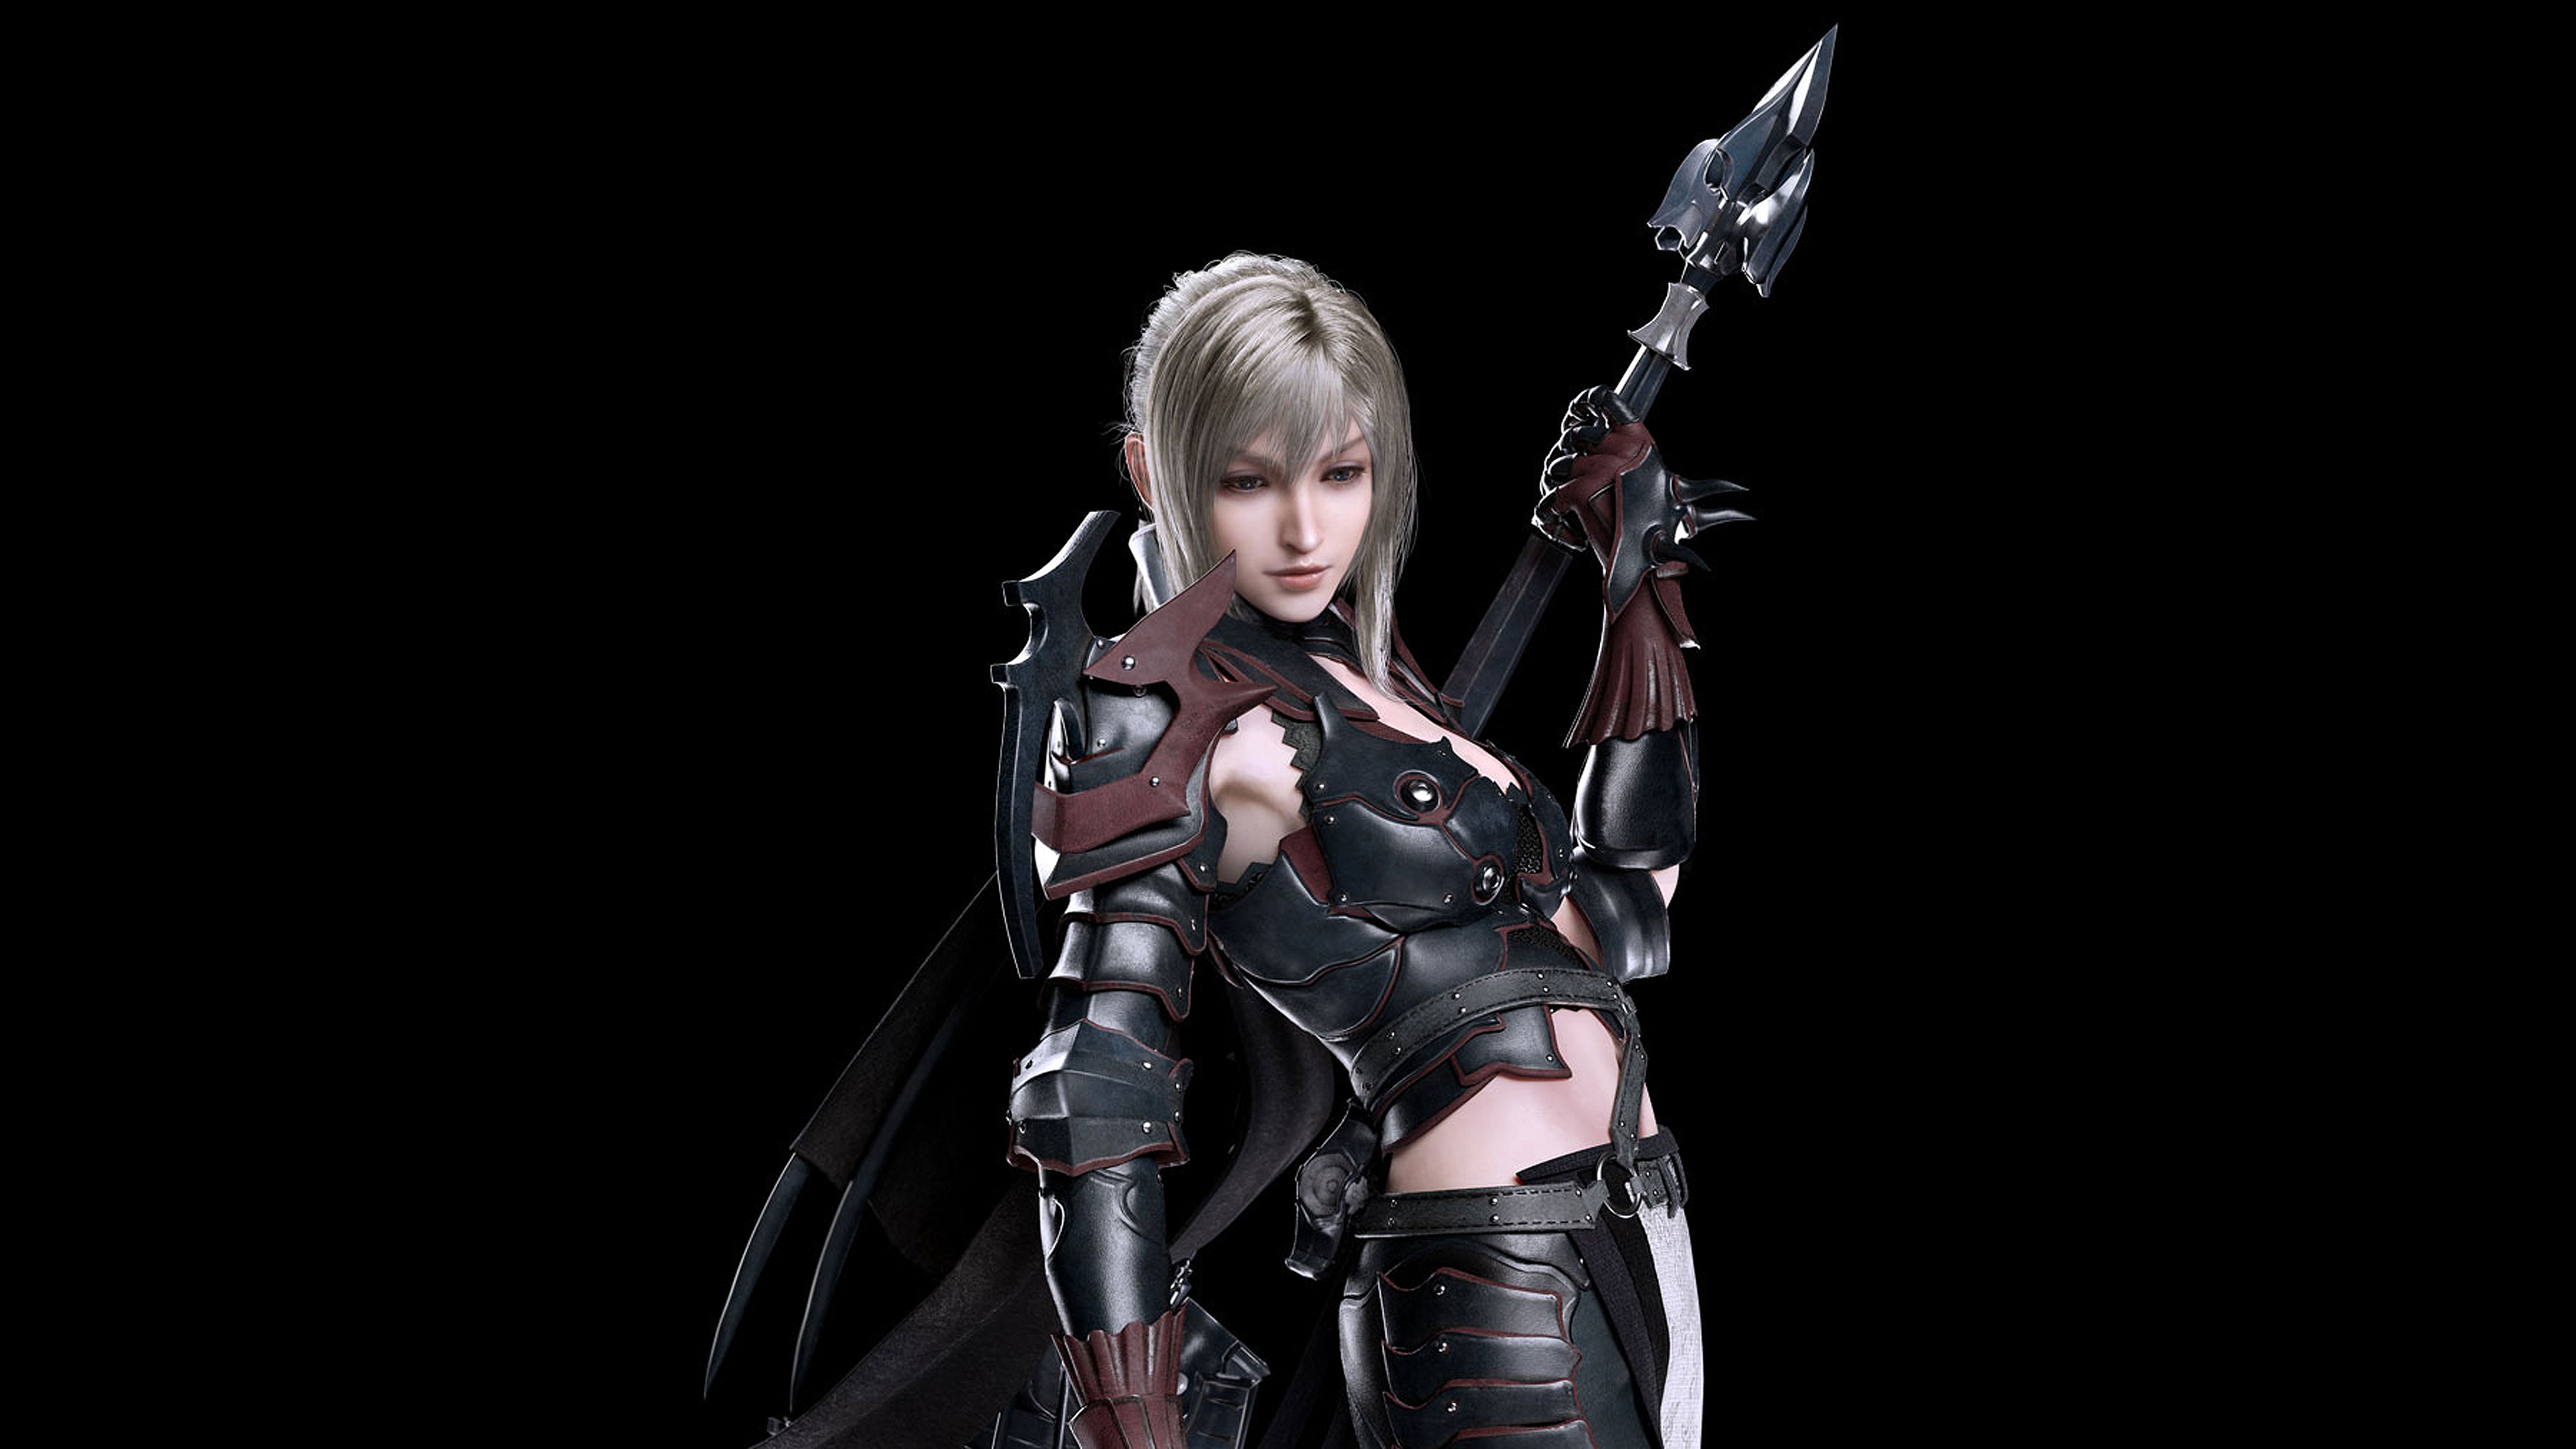 Final Fantasy Xv Wallpapers In Ultra Hd: Aranea Highwind Final Fantasy Xv, HD Games, 4k Wallpapers